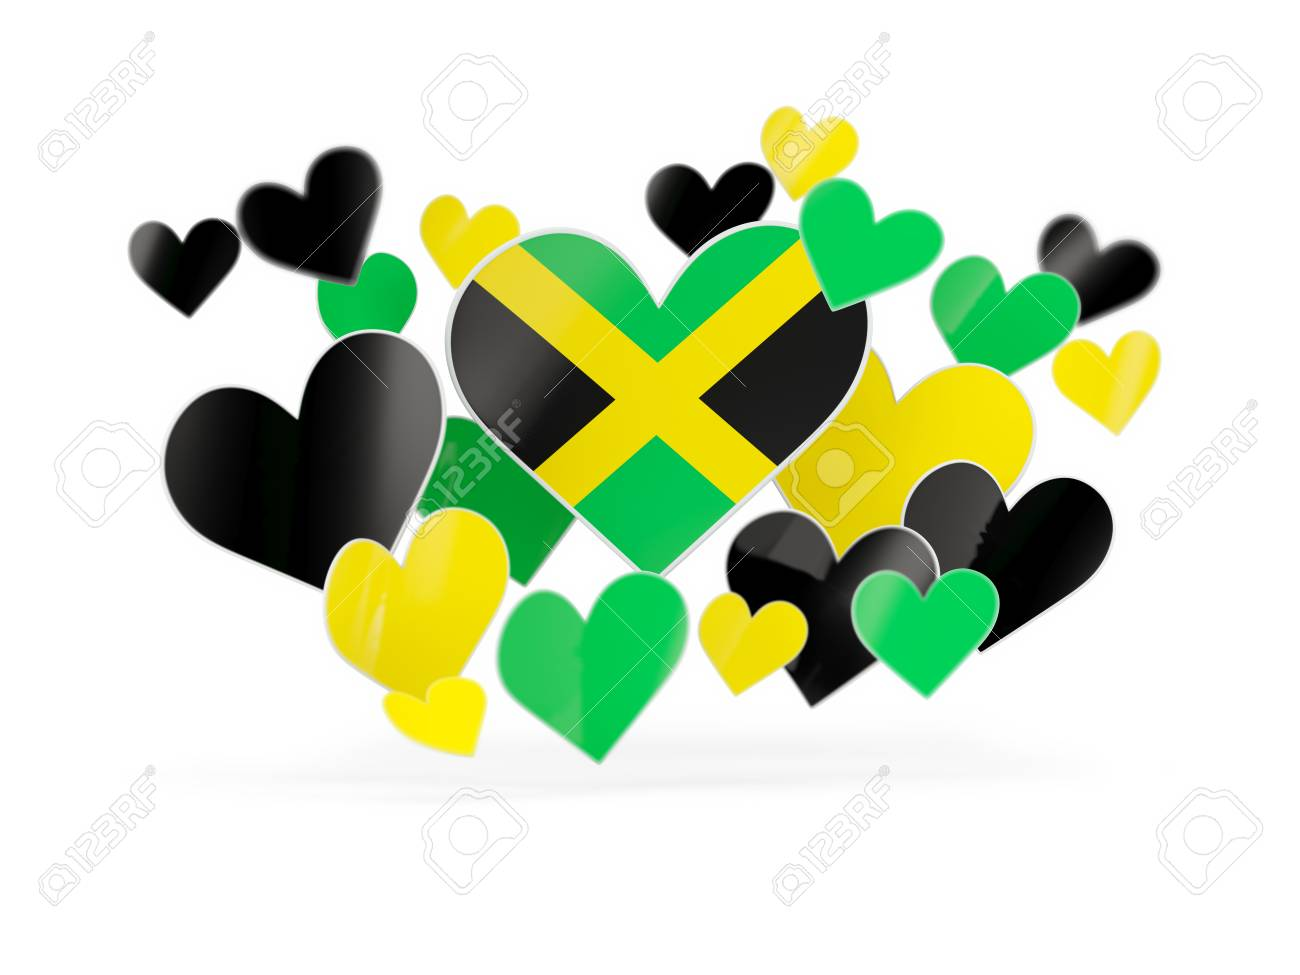 Flag of jamaica heart shaped stickers on white 3d illustration stock illustration 63658505